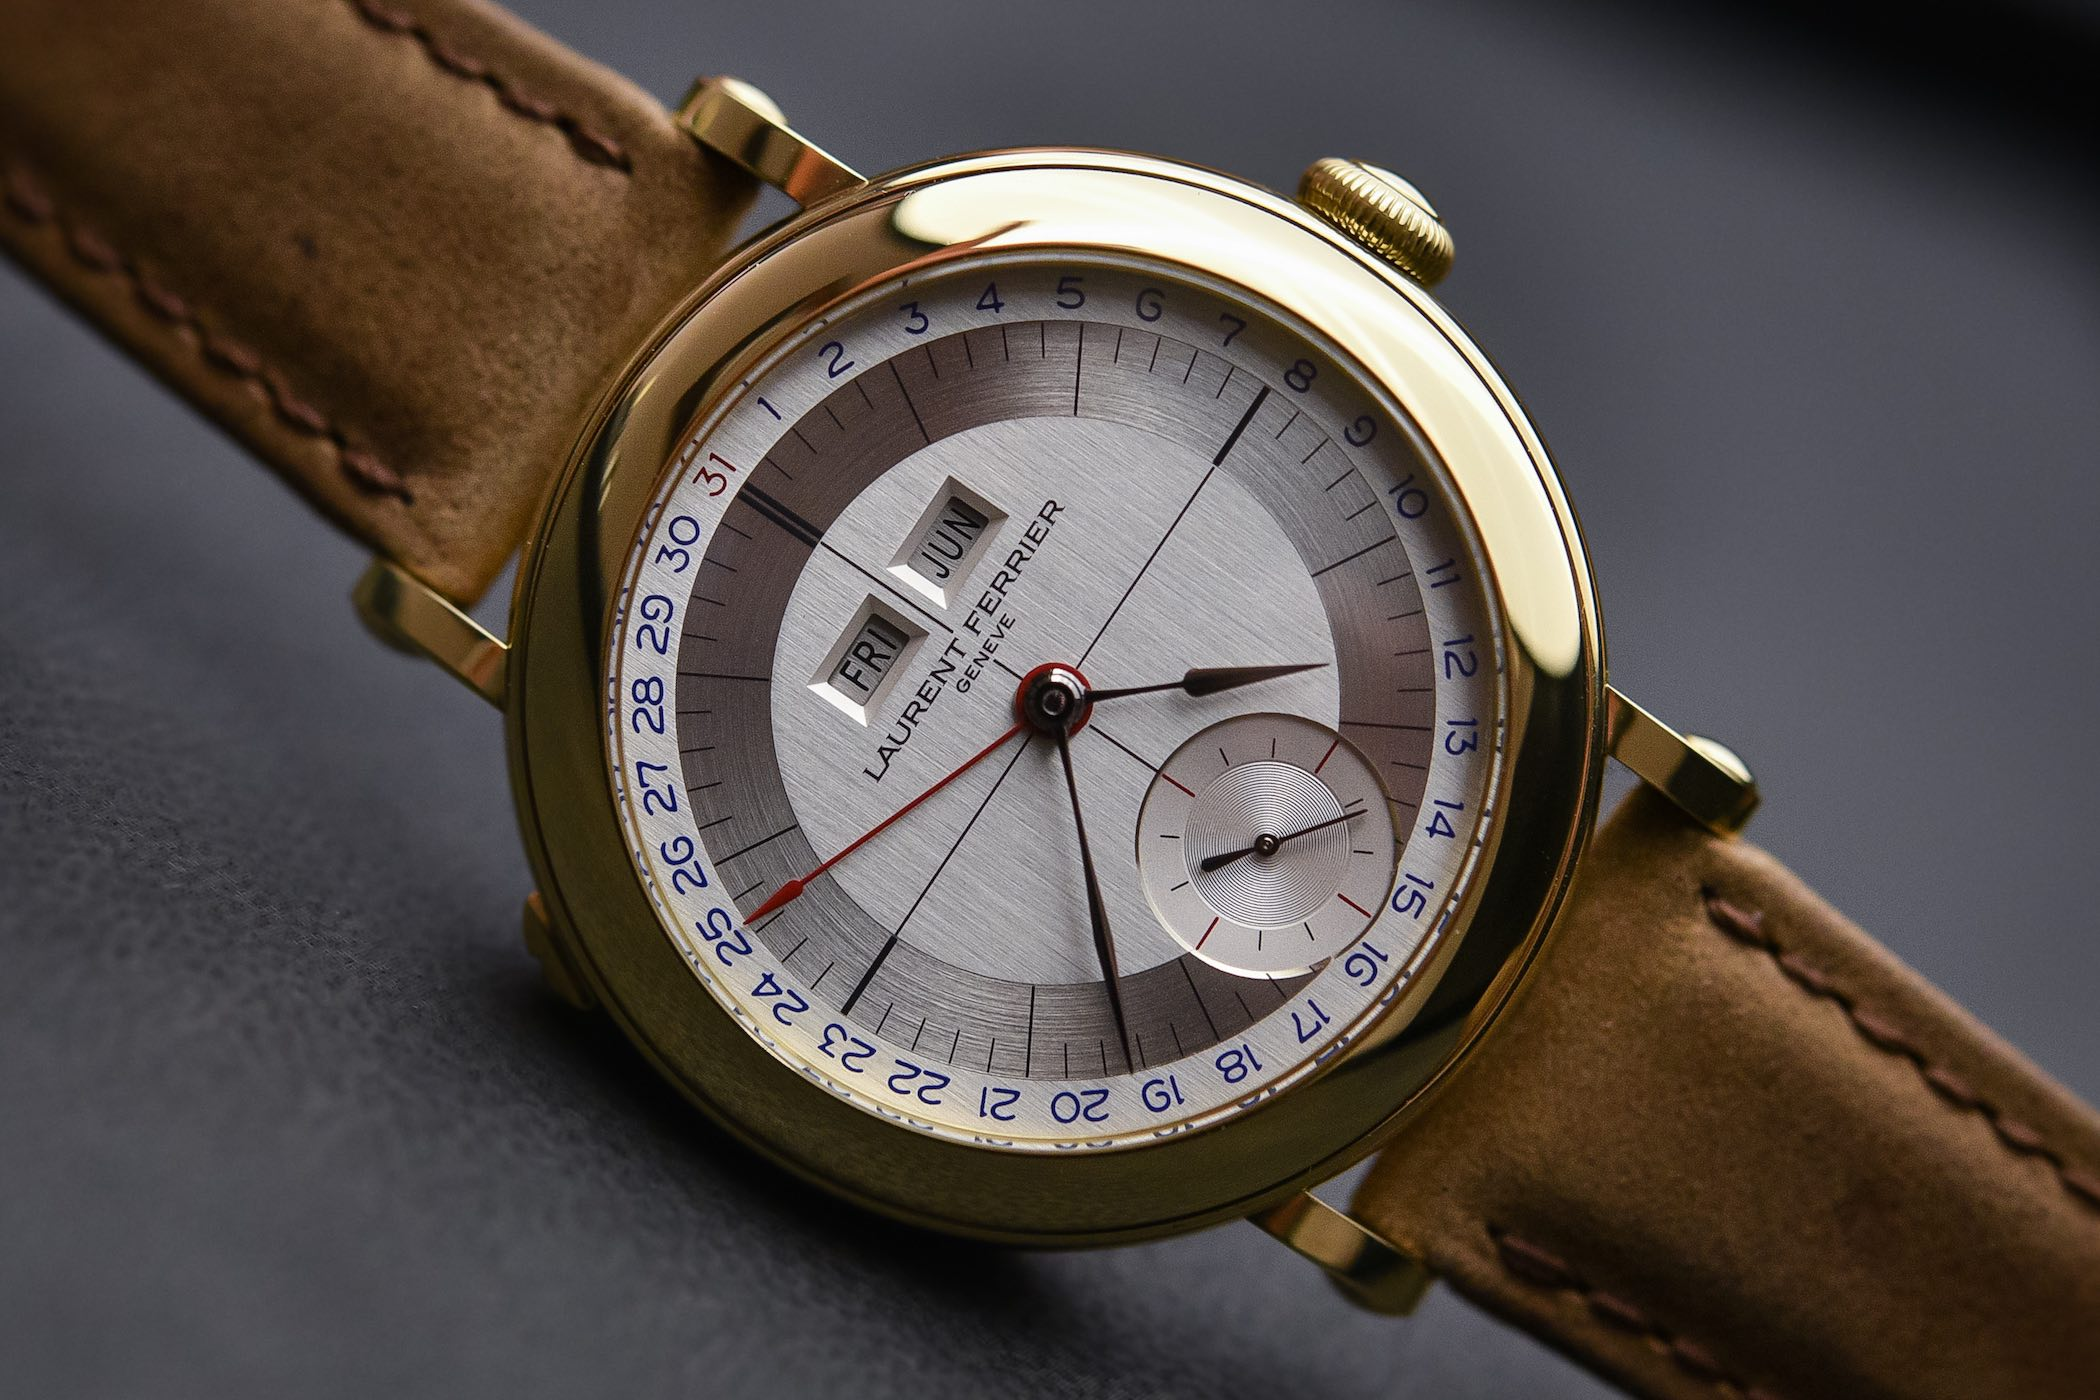 Laurent Ferrier Galet Annual Calendar School Piece Pale Yellow Gold